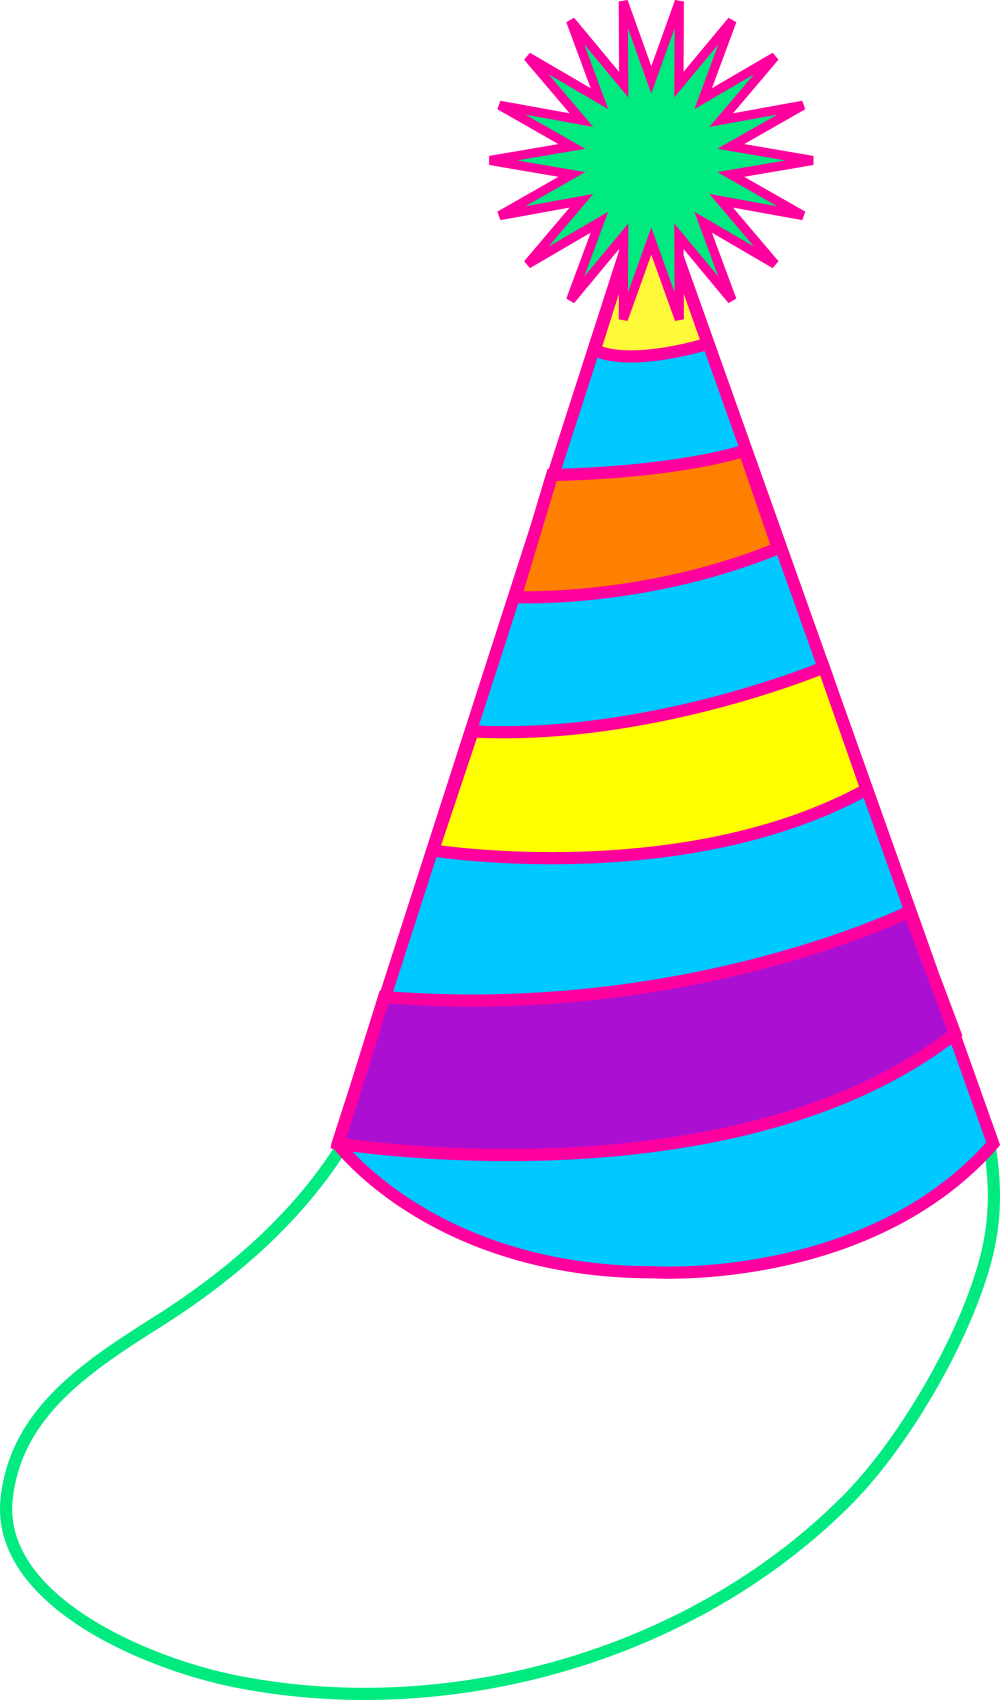 medium resolution of colorful party hat free clip art